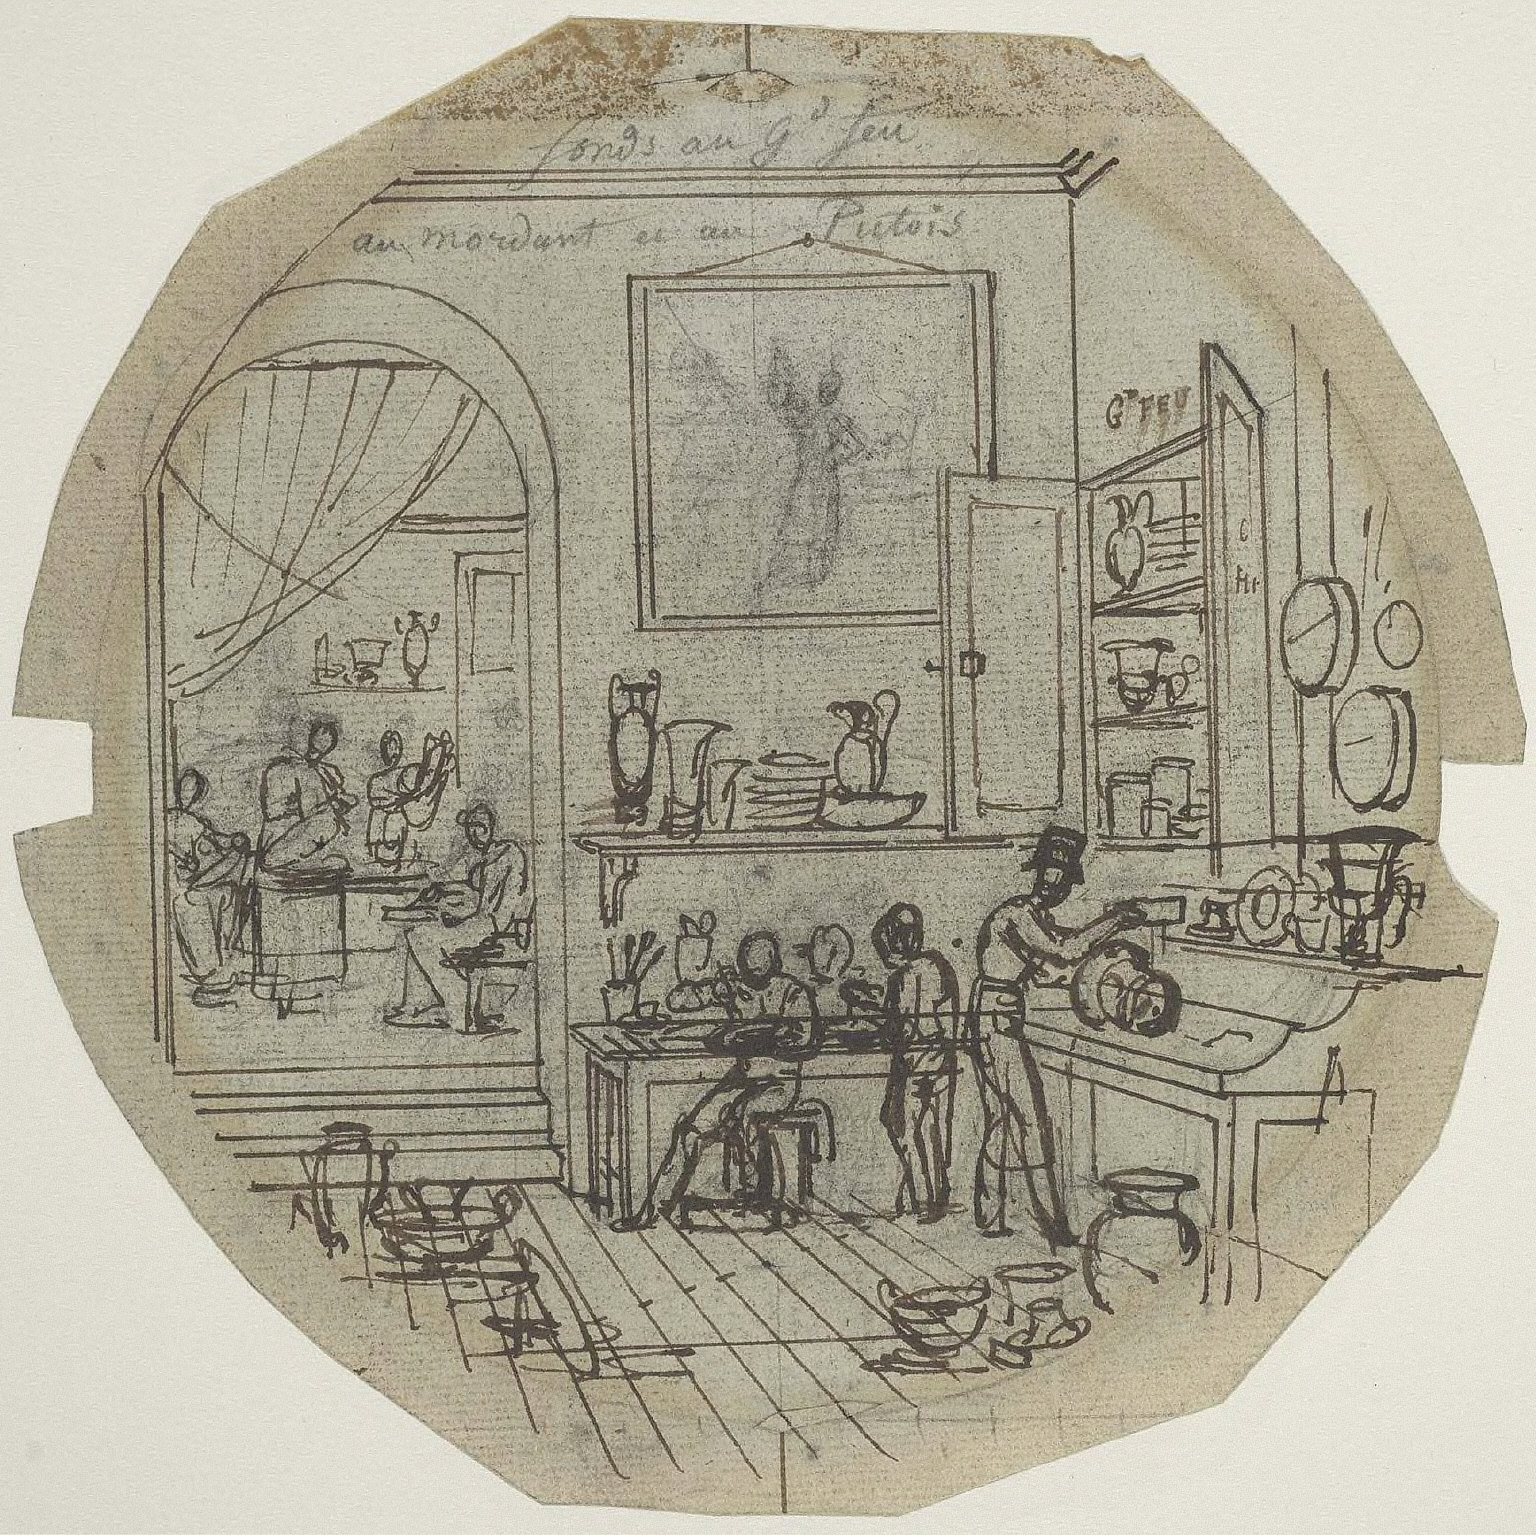 Study for the Service des Arts Industriels